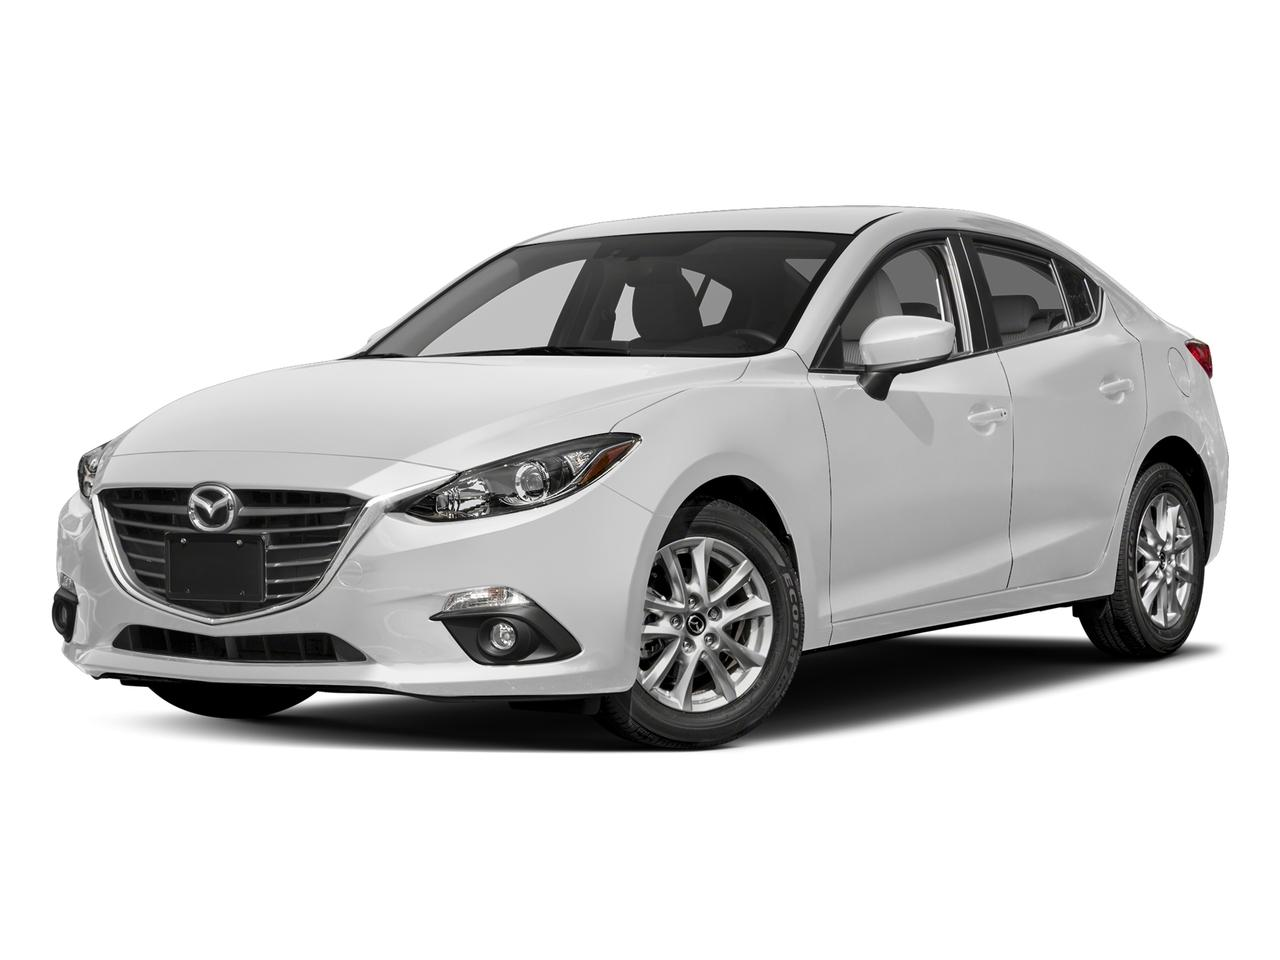 2016 Mazda Mazda3 Vehicle Photo in Houston, TX 77074